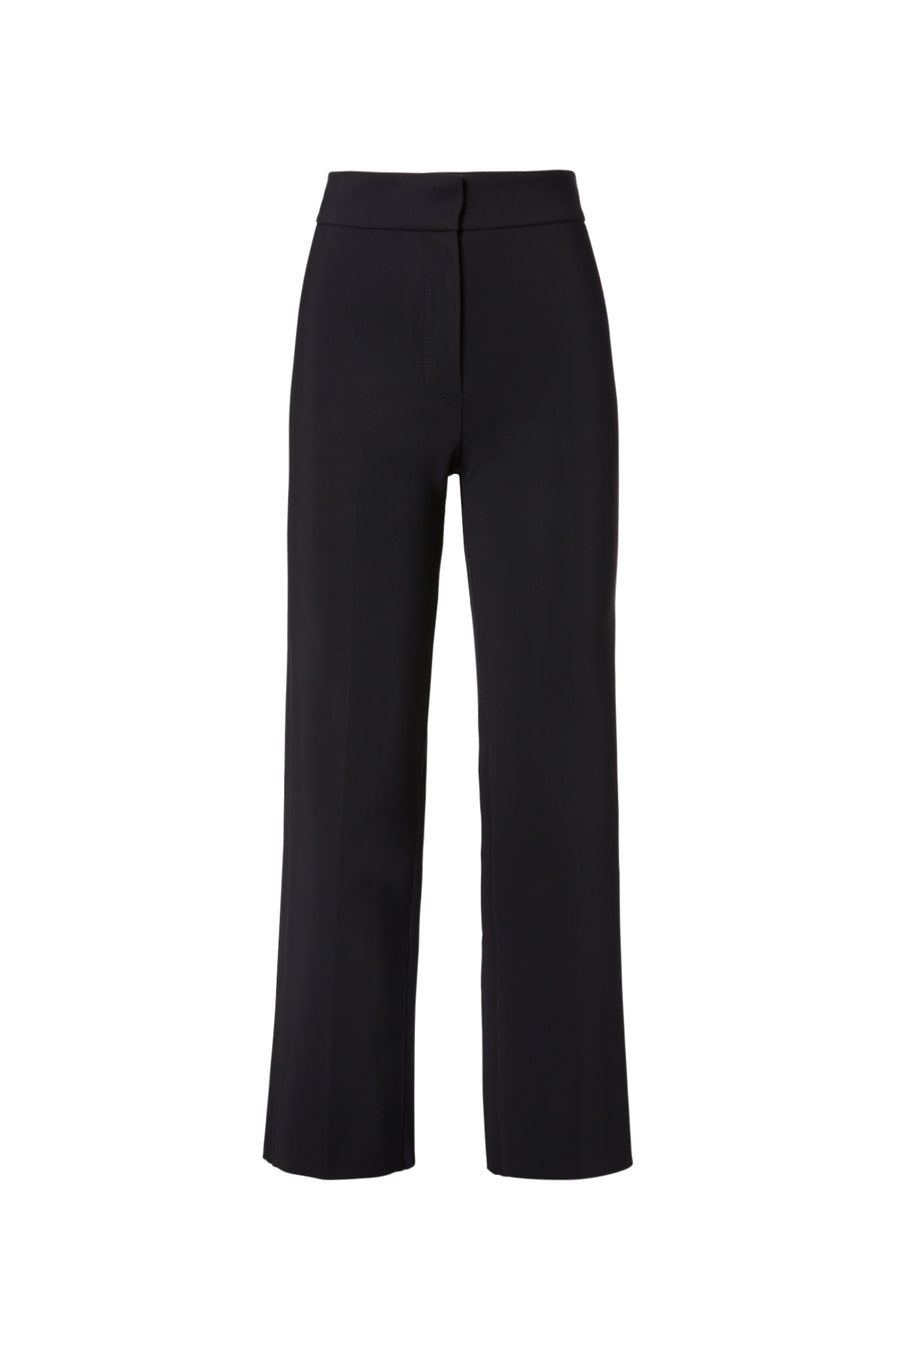 SCUBA PANT, BLACK color